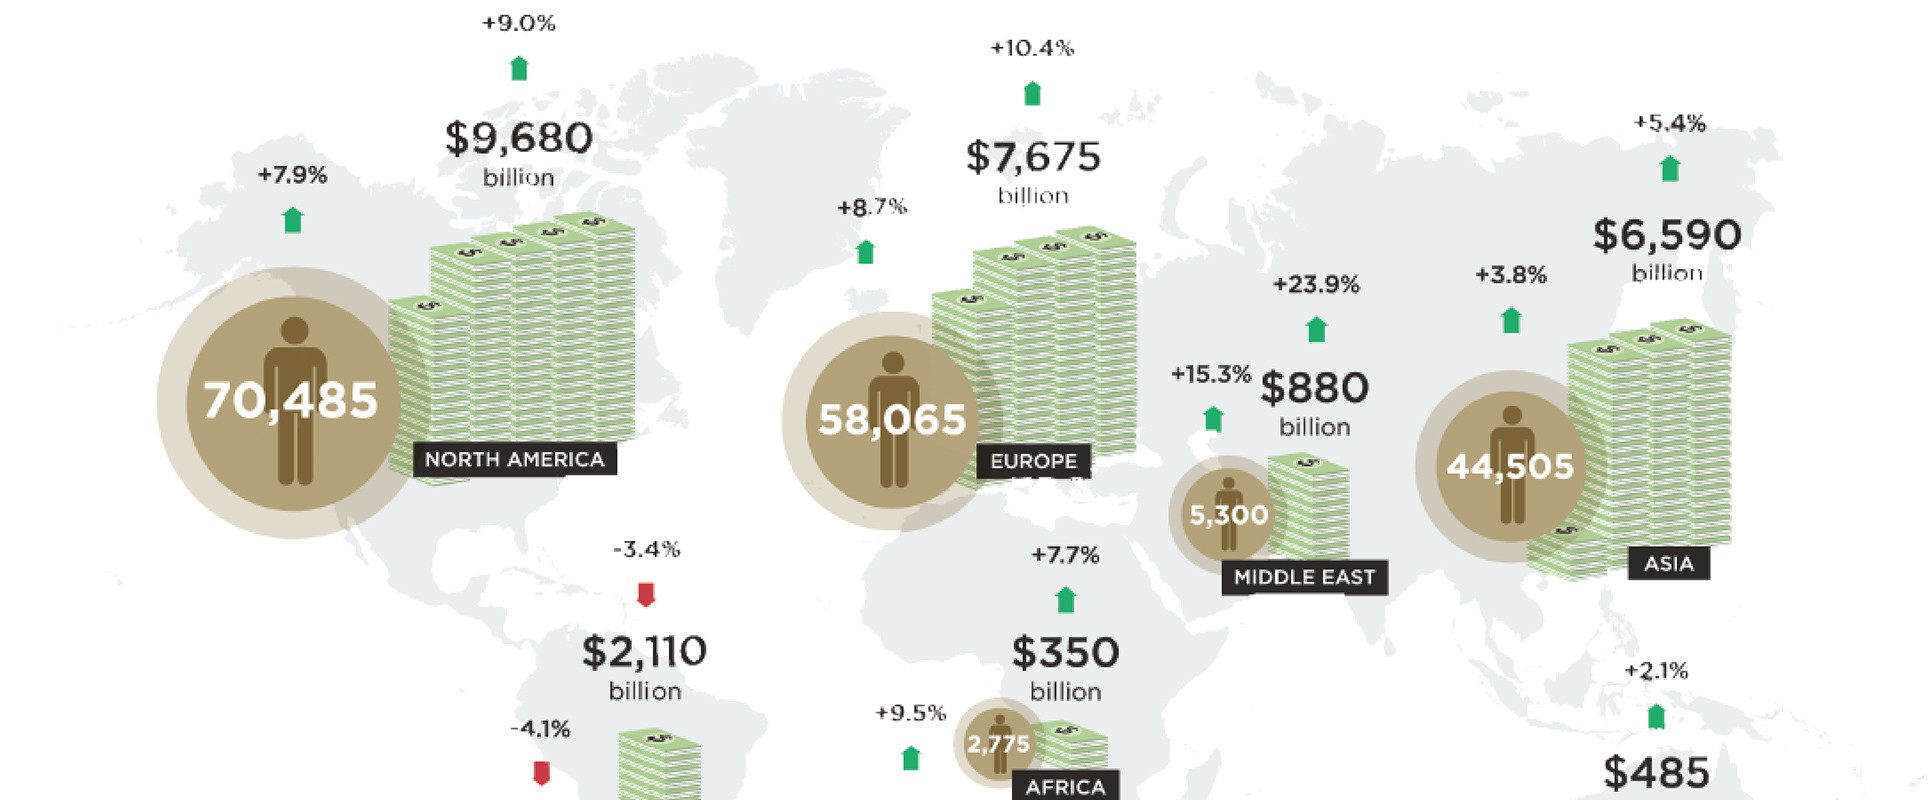 Arton Capital and Wealth-X release a special report